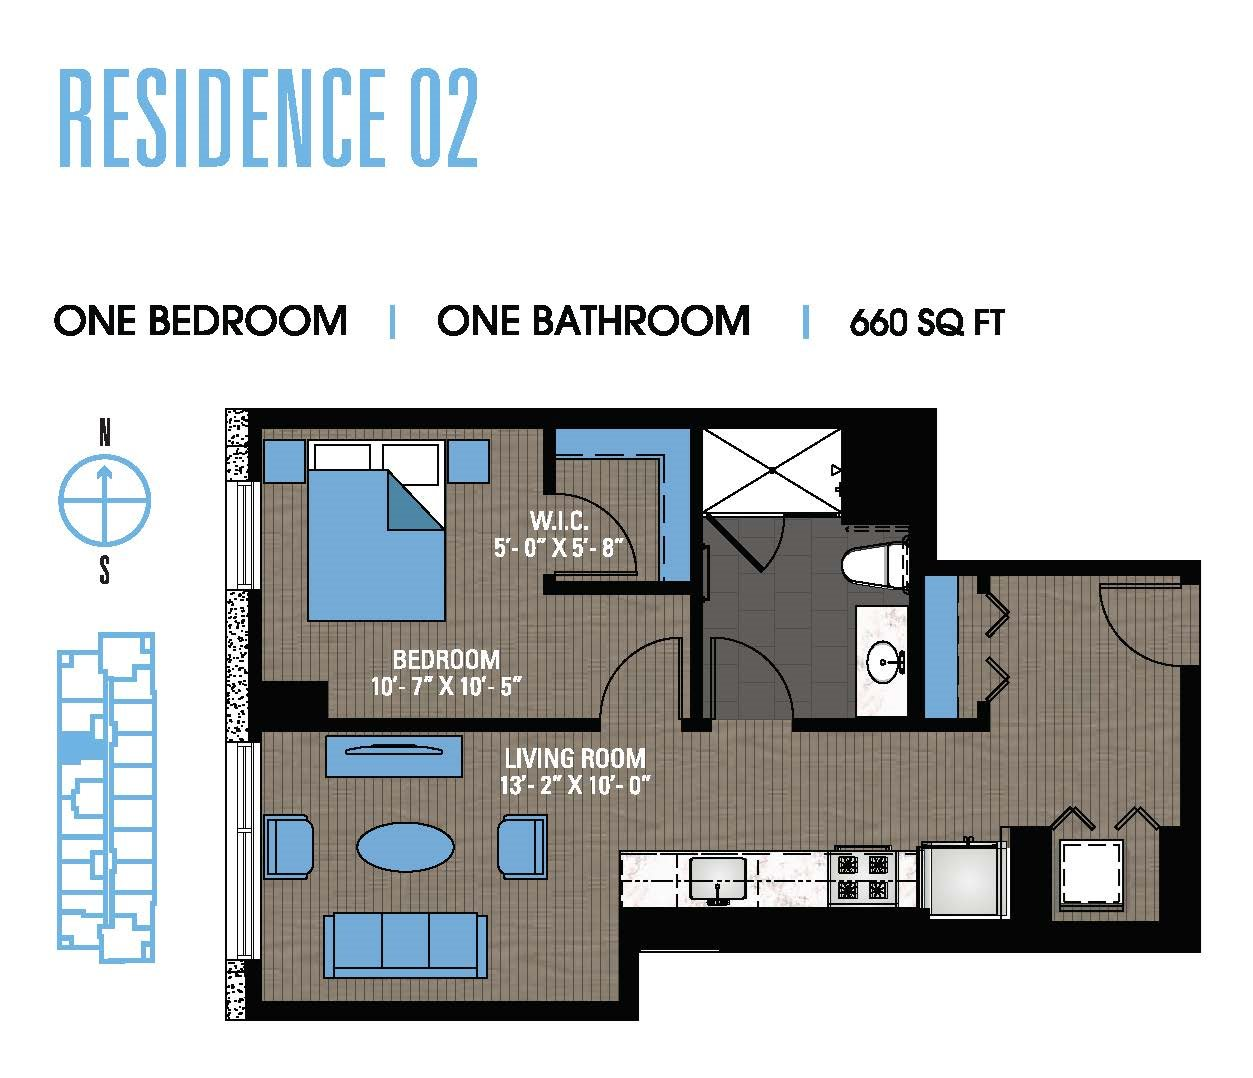 One Bedroom 02 Floor Plan 3